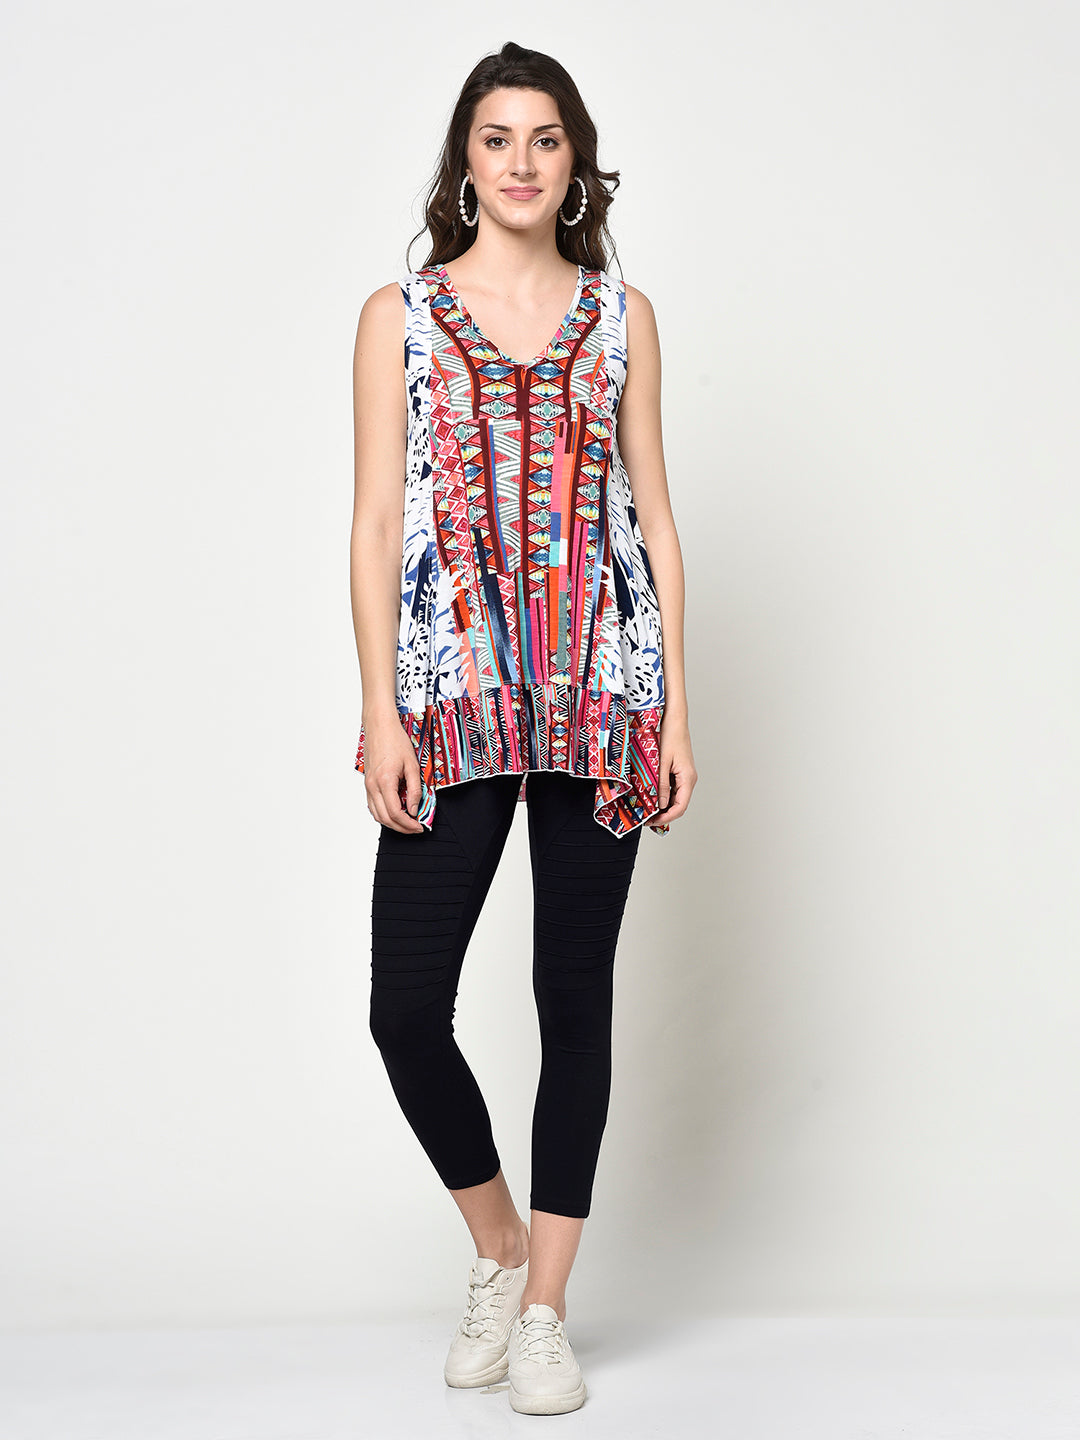 Sleeveless Block Printed Ladies Tunic Top - Avsoy